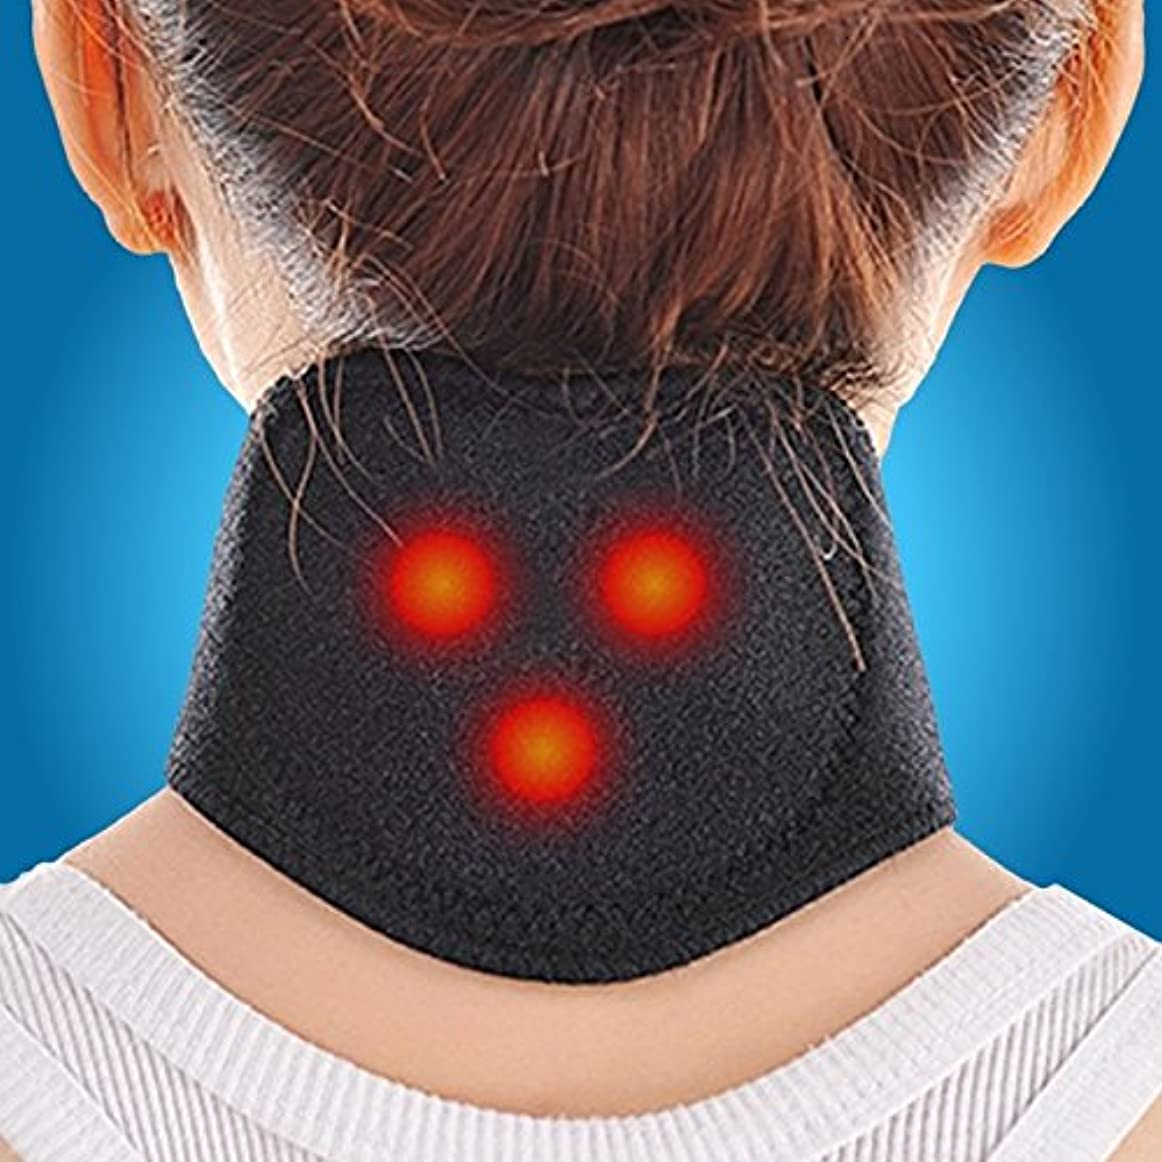 余計なマエストロタクシーTourmaline Magnetic Therapy Neck Massager Cervical Vertebra Protection Spontaneous Heating Belt Body Massager Face Skin Care Hot